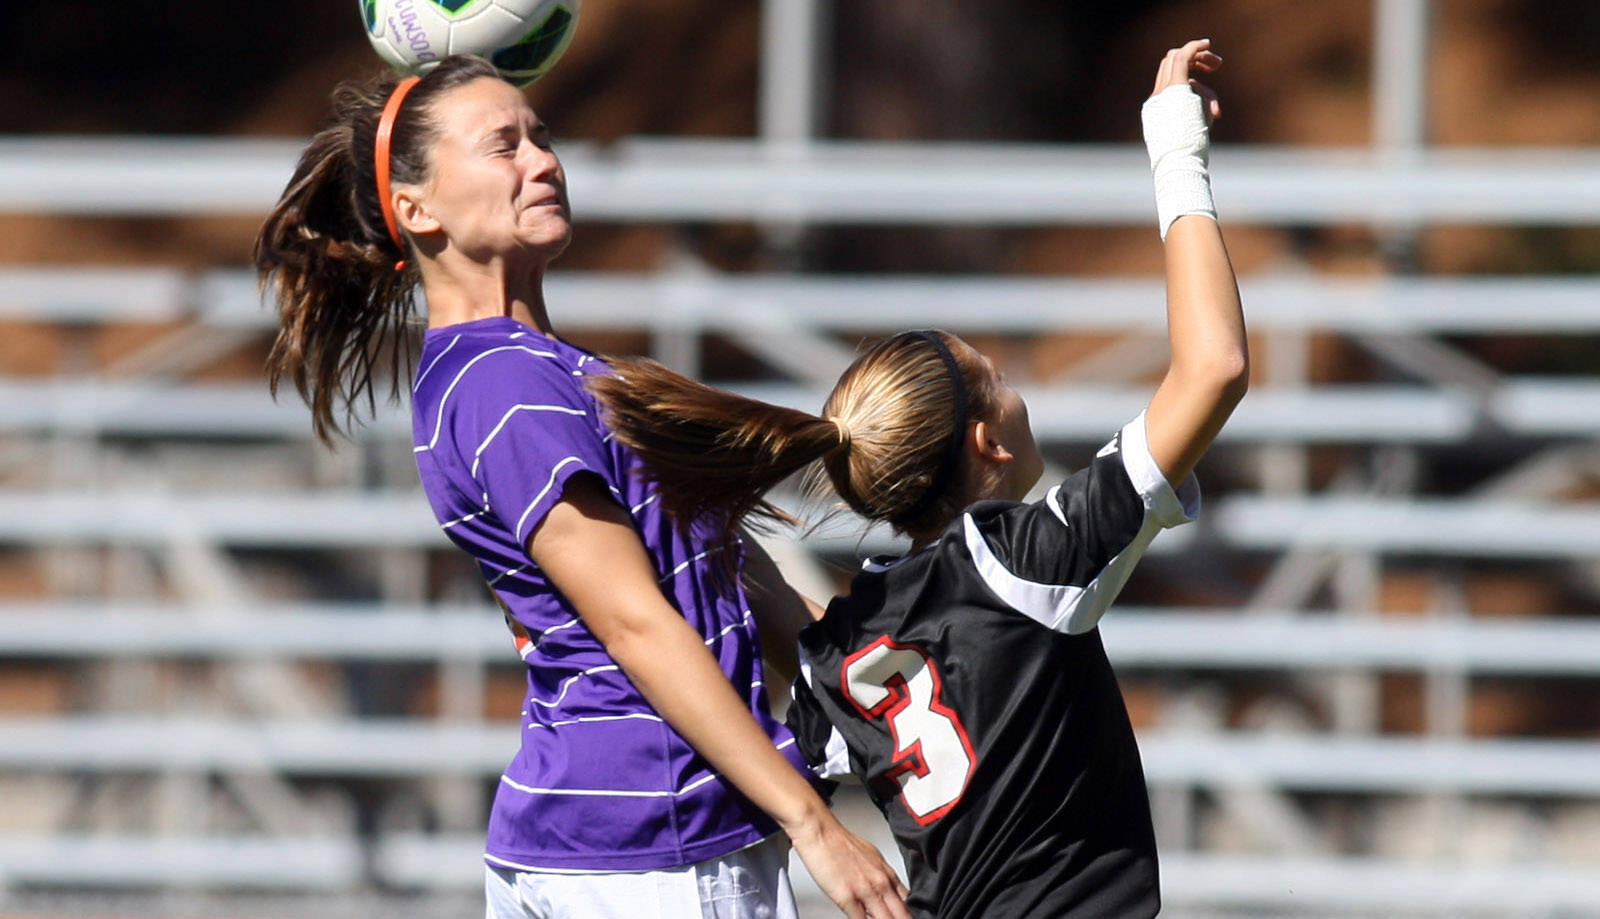 Dobberstein and Elder Named to 2012 All-ACC Academic Team